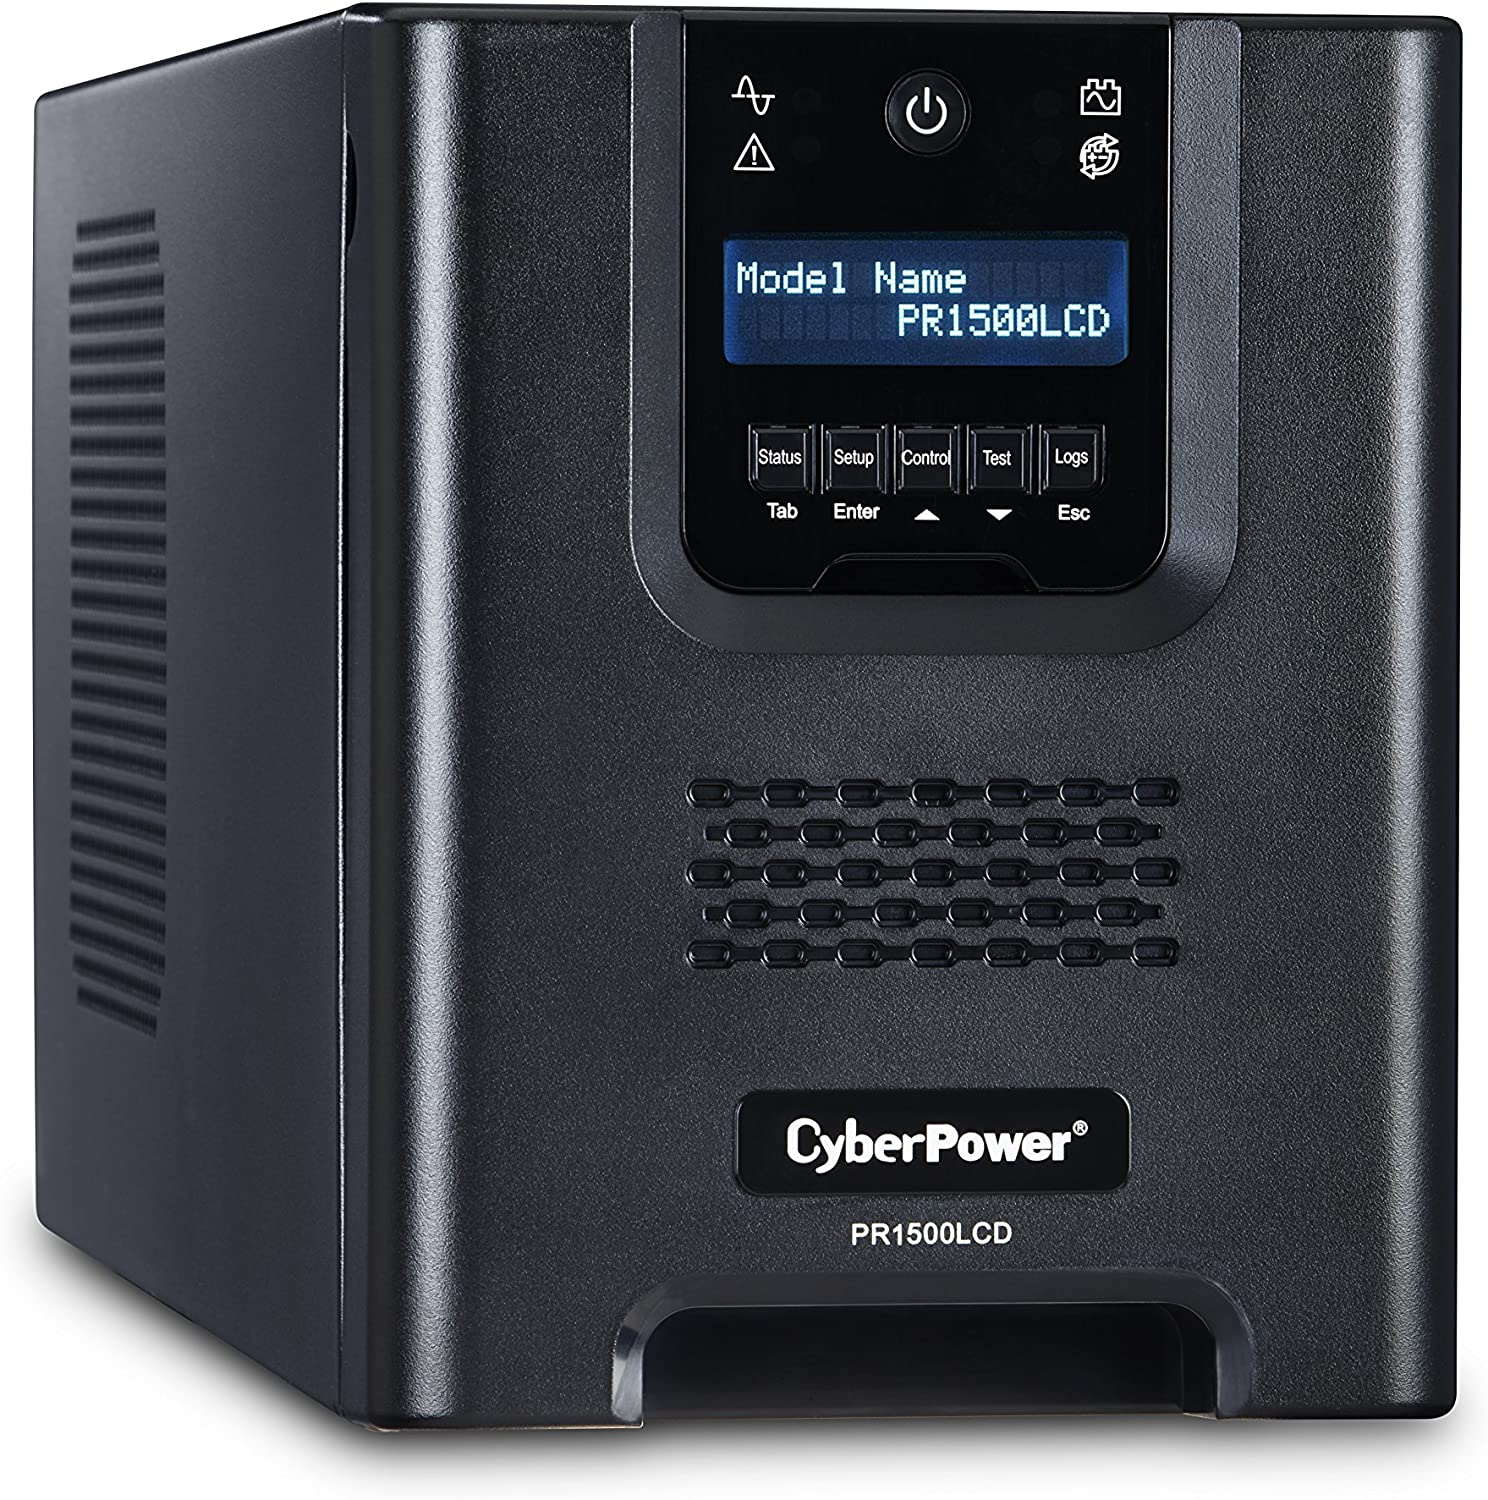 CyberPower PR1500LCD Smart App Sinewave UPS System, 1500VA/1500W, 8 Outlets, AVR, Mini-Tower